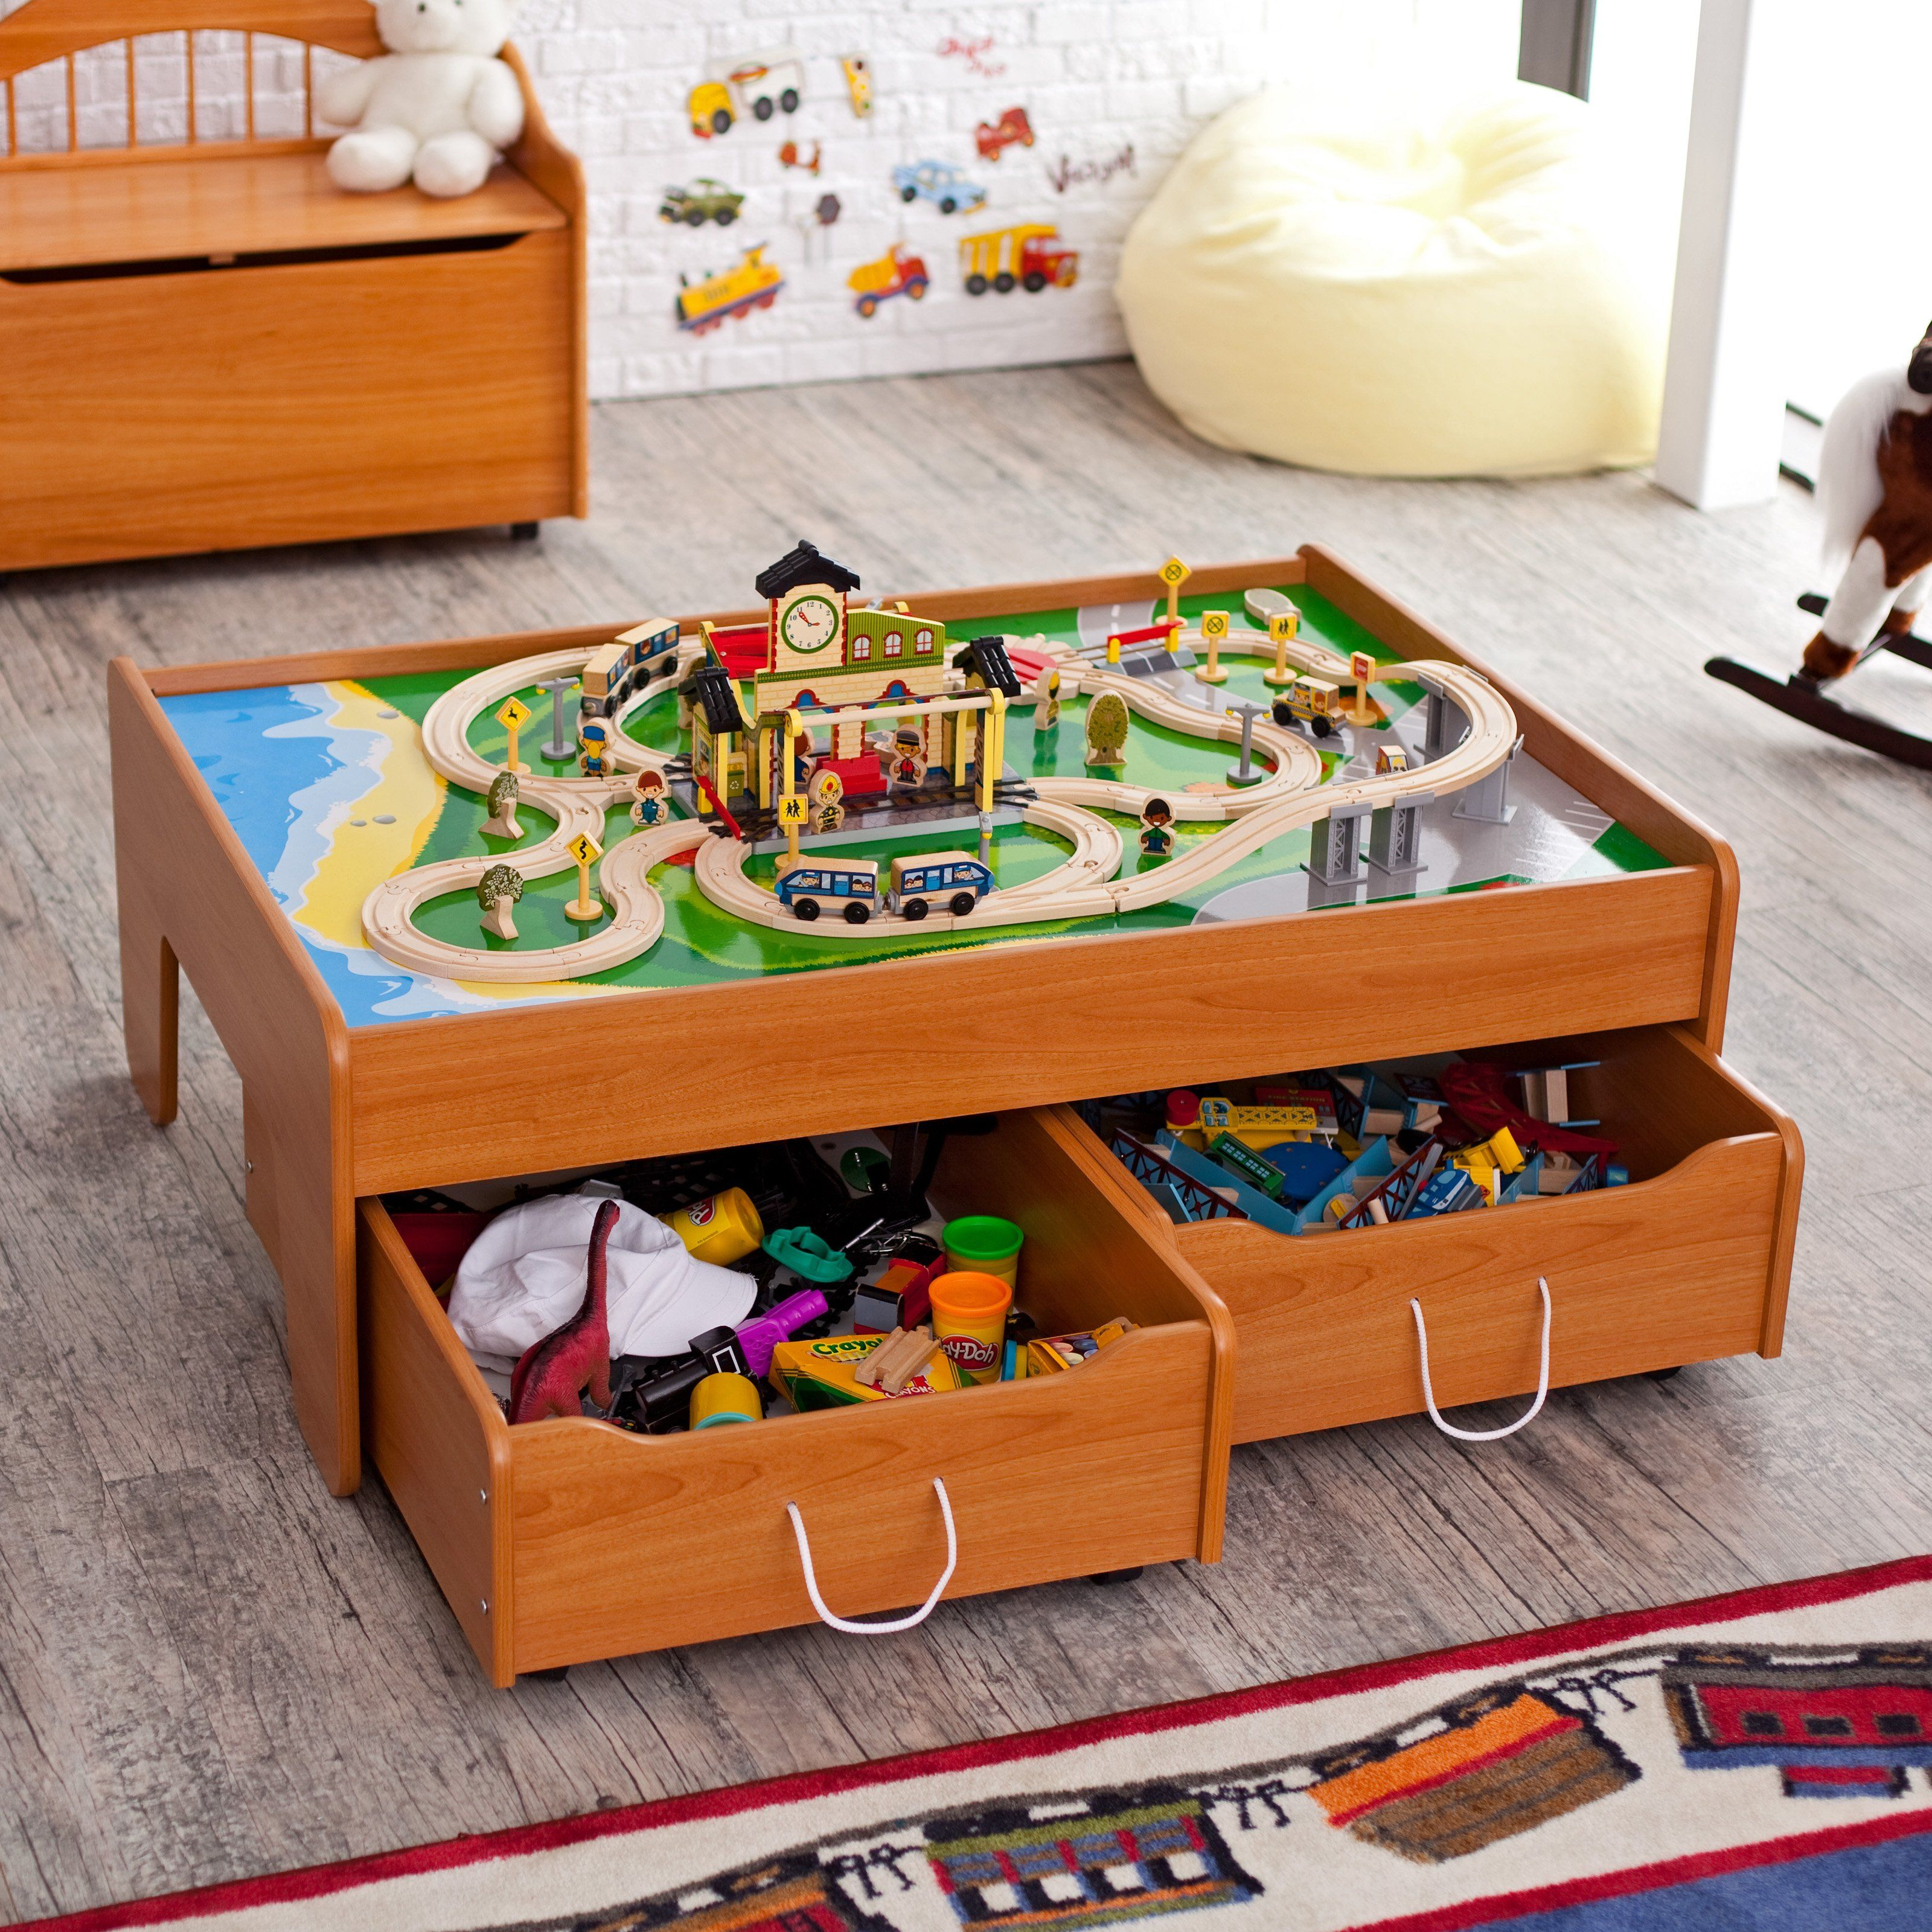 almost tables saved cut lot or table me build line basket probably shanty spacer a diy on that train rails found with hour the lego drawers drawer to inch and easier i up it chic an